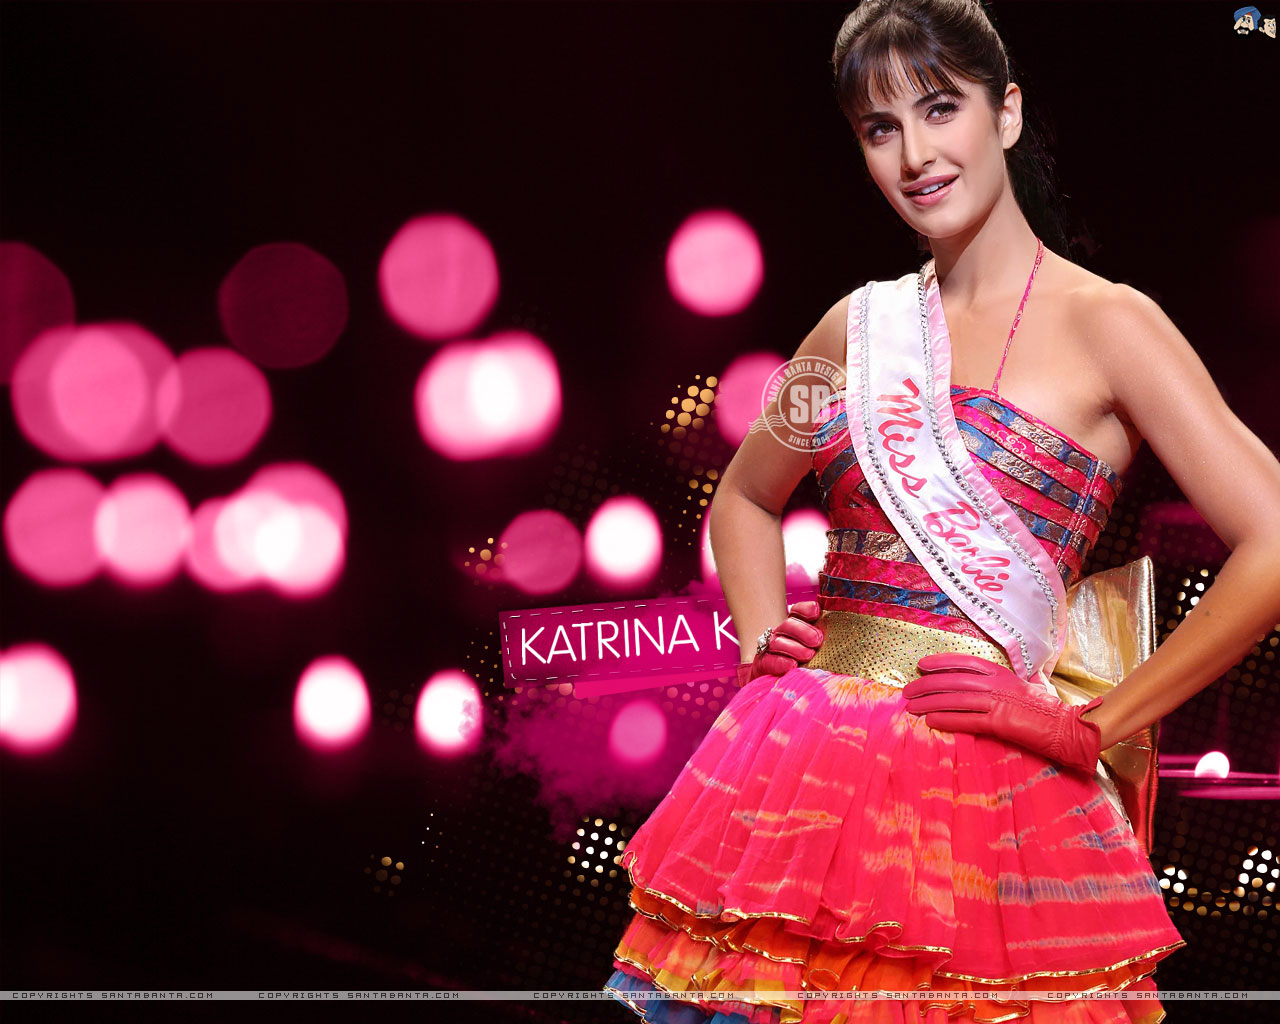 HD Wallpapers of Katrina Kaif HD Wallpapers 1280x1024